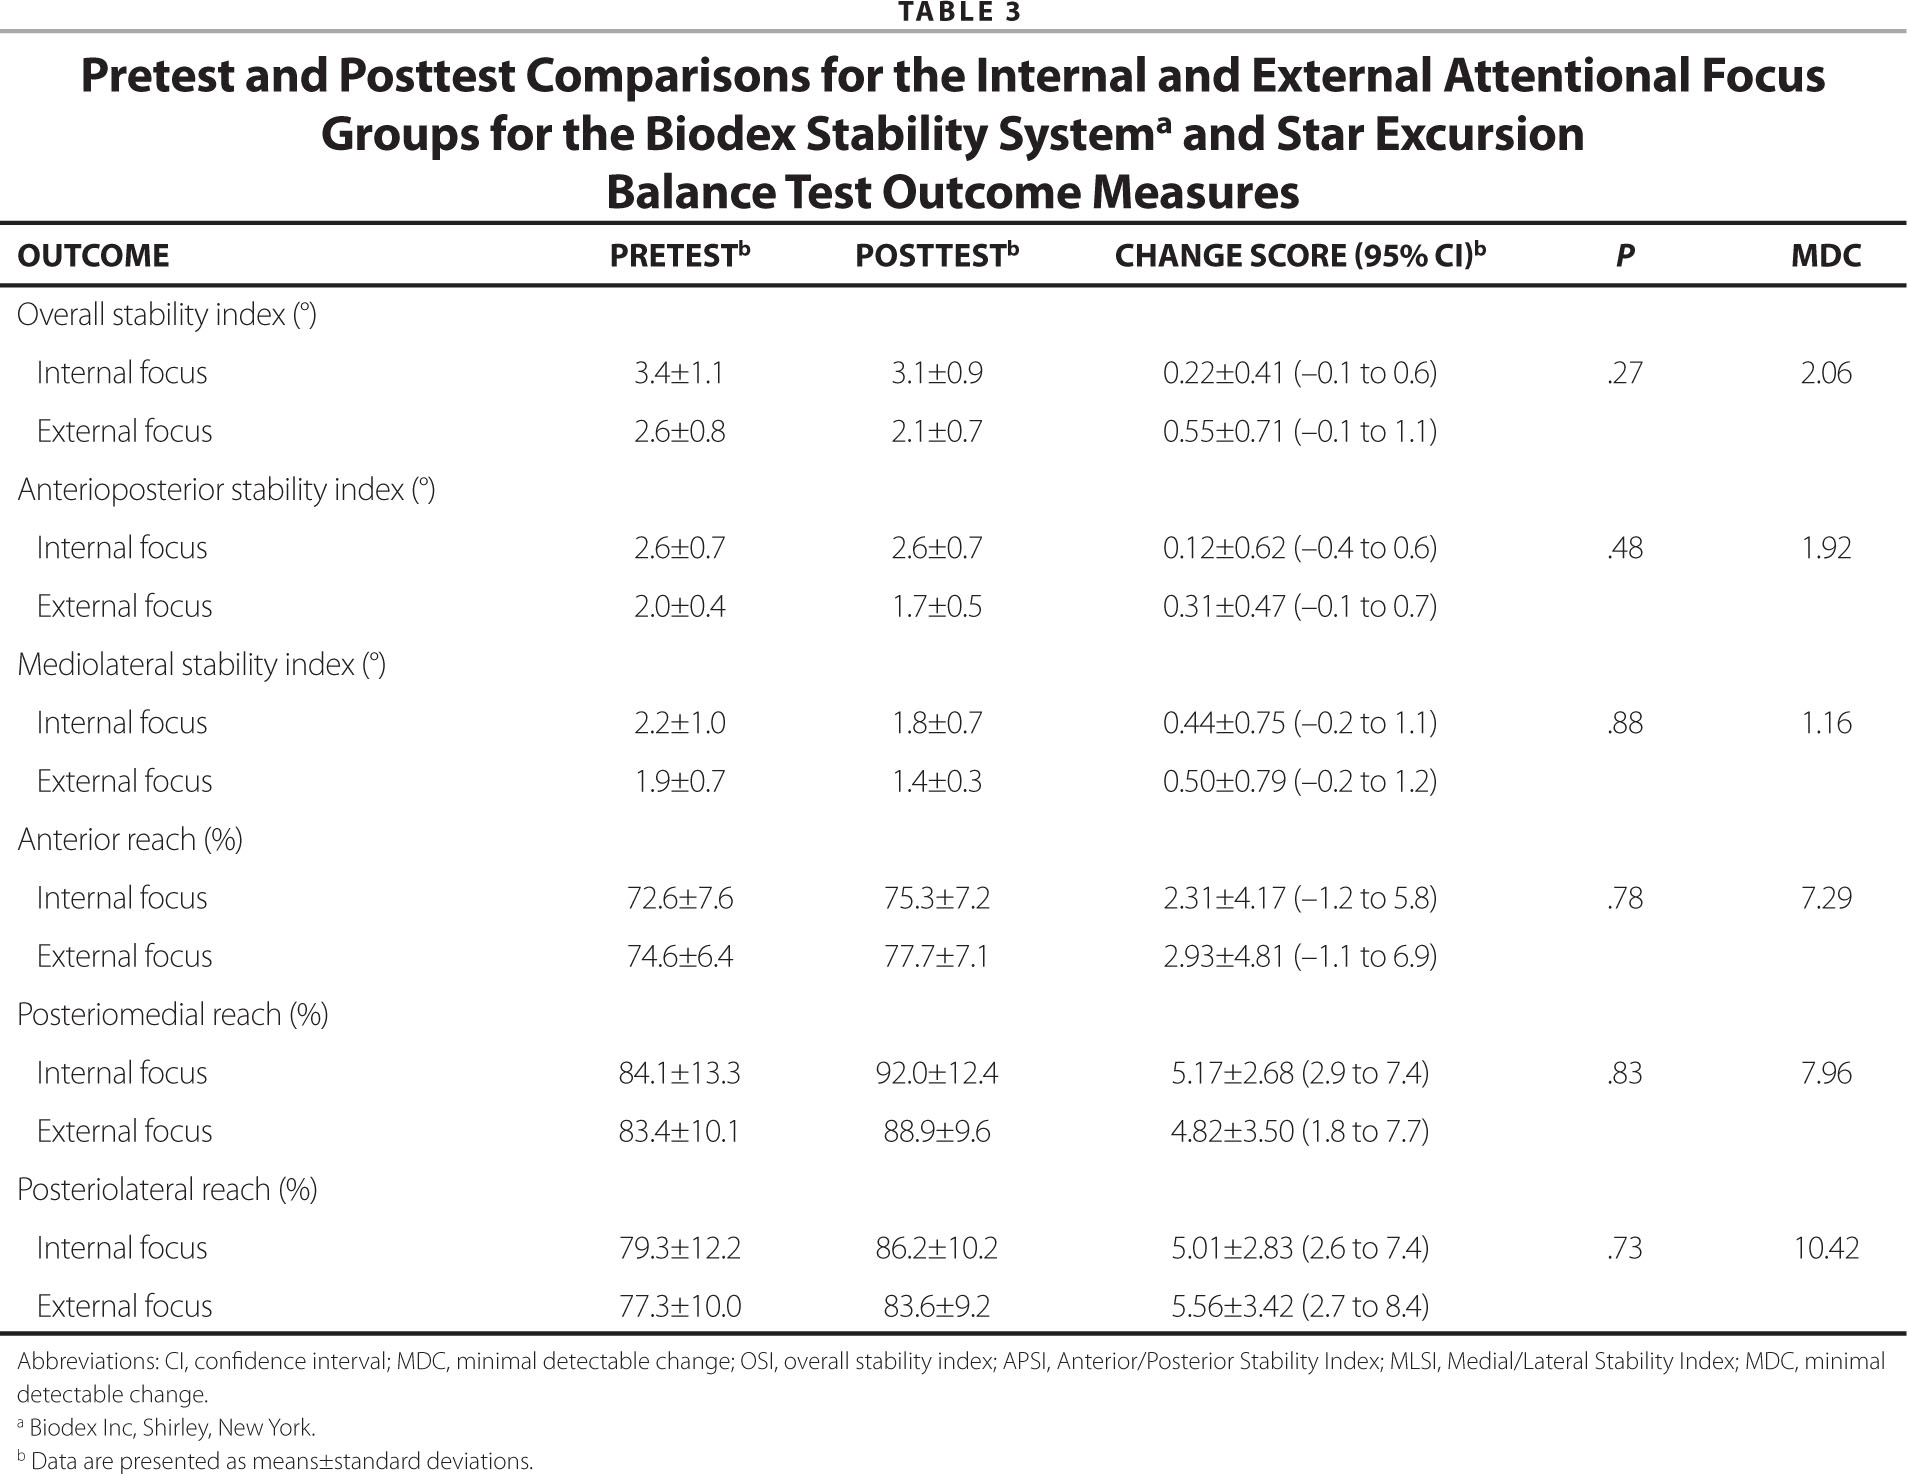 Pretest and Posttest Comparisons for the Internal and External Attentional Focus Groups for the Biodex Stability Systema and Star Excursion Balance Test Outcome Measures